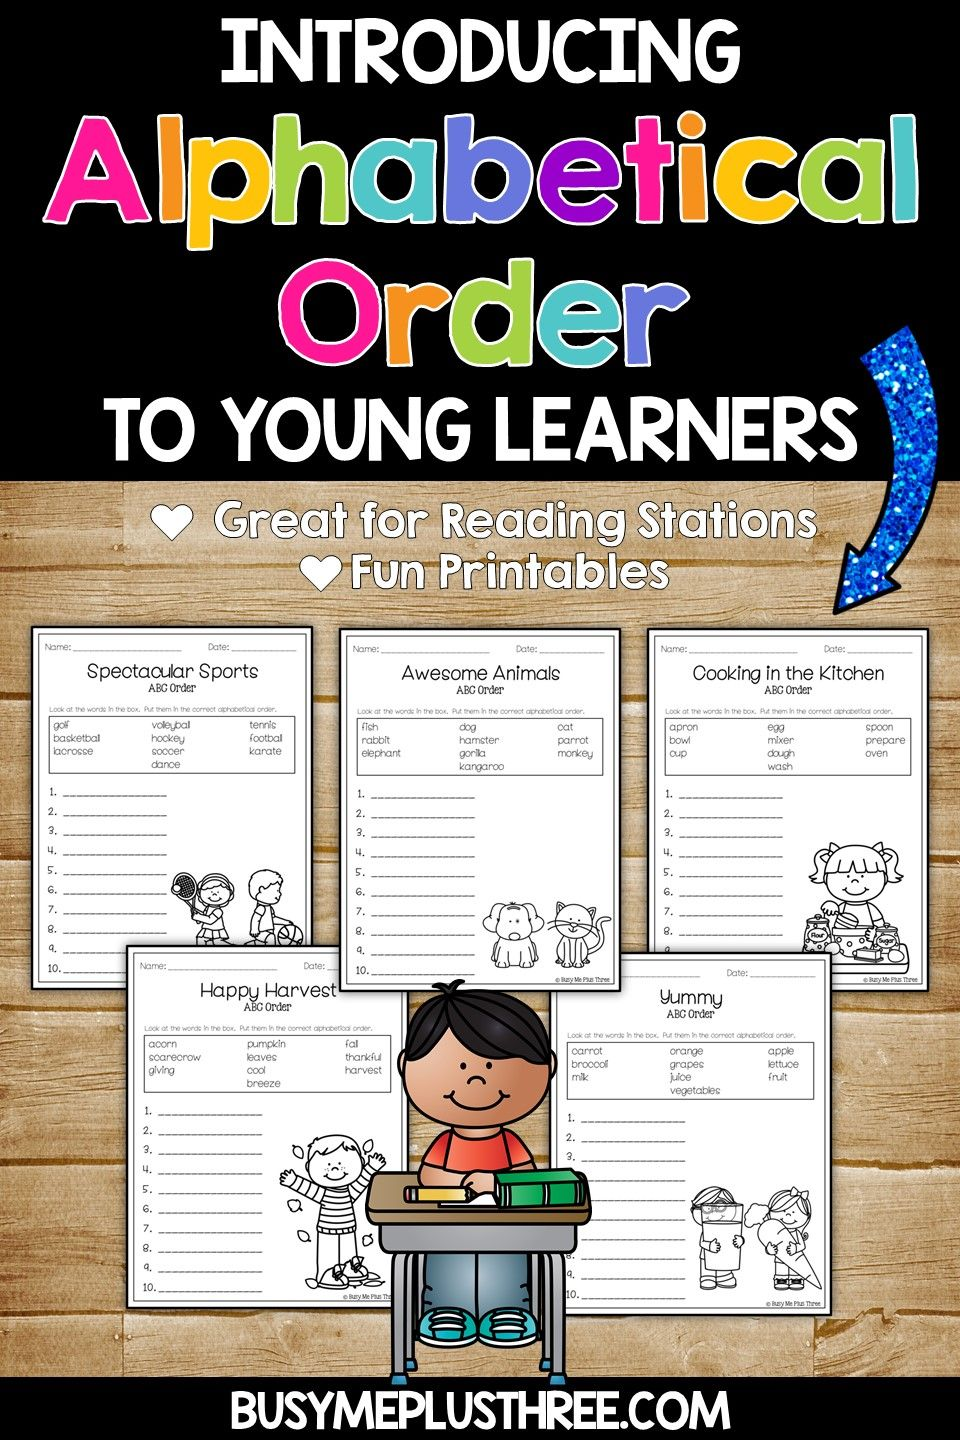 Alphabetical Order Worksheets For 1st And 2nd Grade Students Abc Order Worksheet Abc Order Abc Printables [ 1440 x 960 Pixel ]